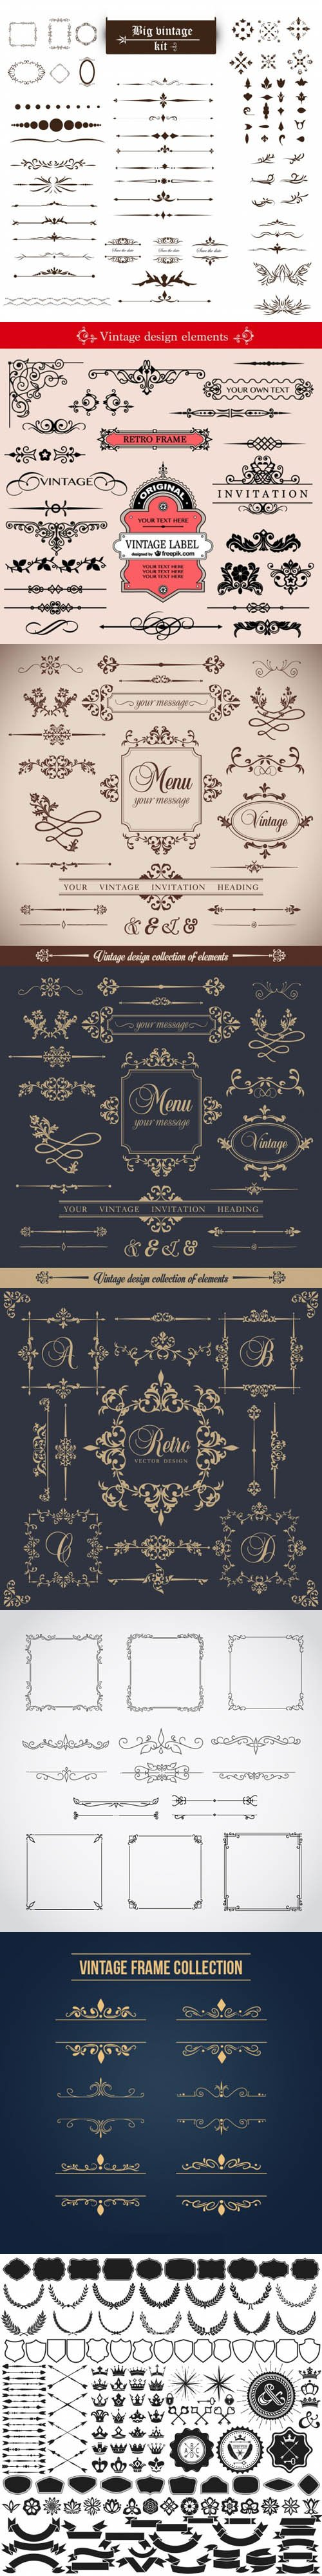 Design Collection of Ornamental Elements Vector